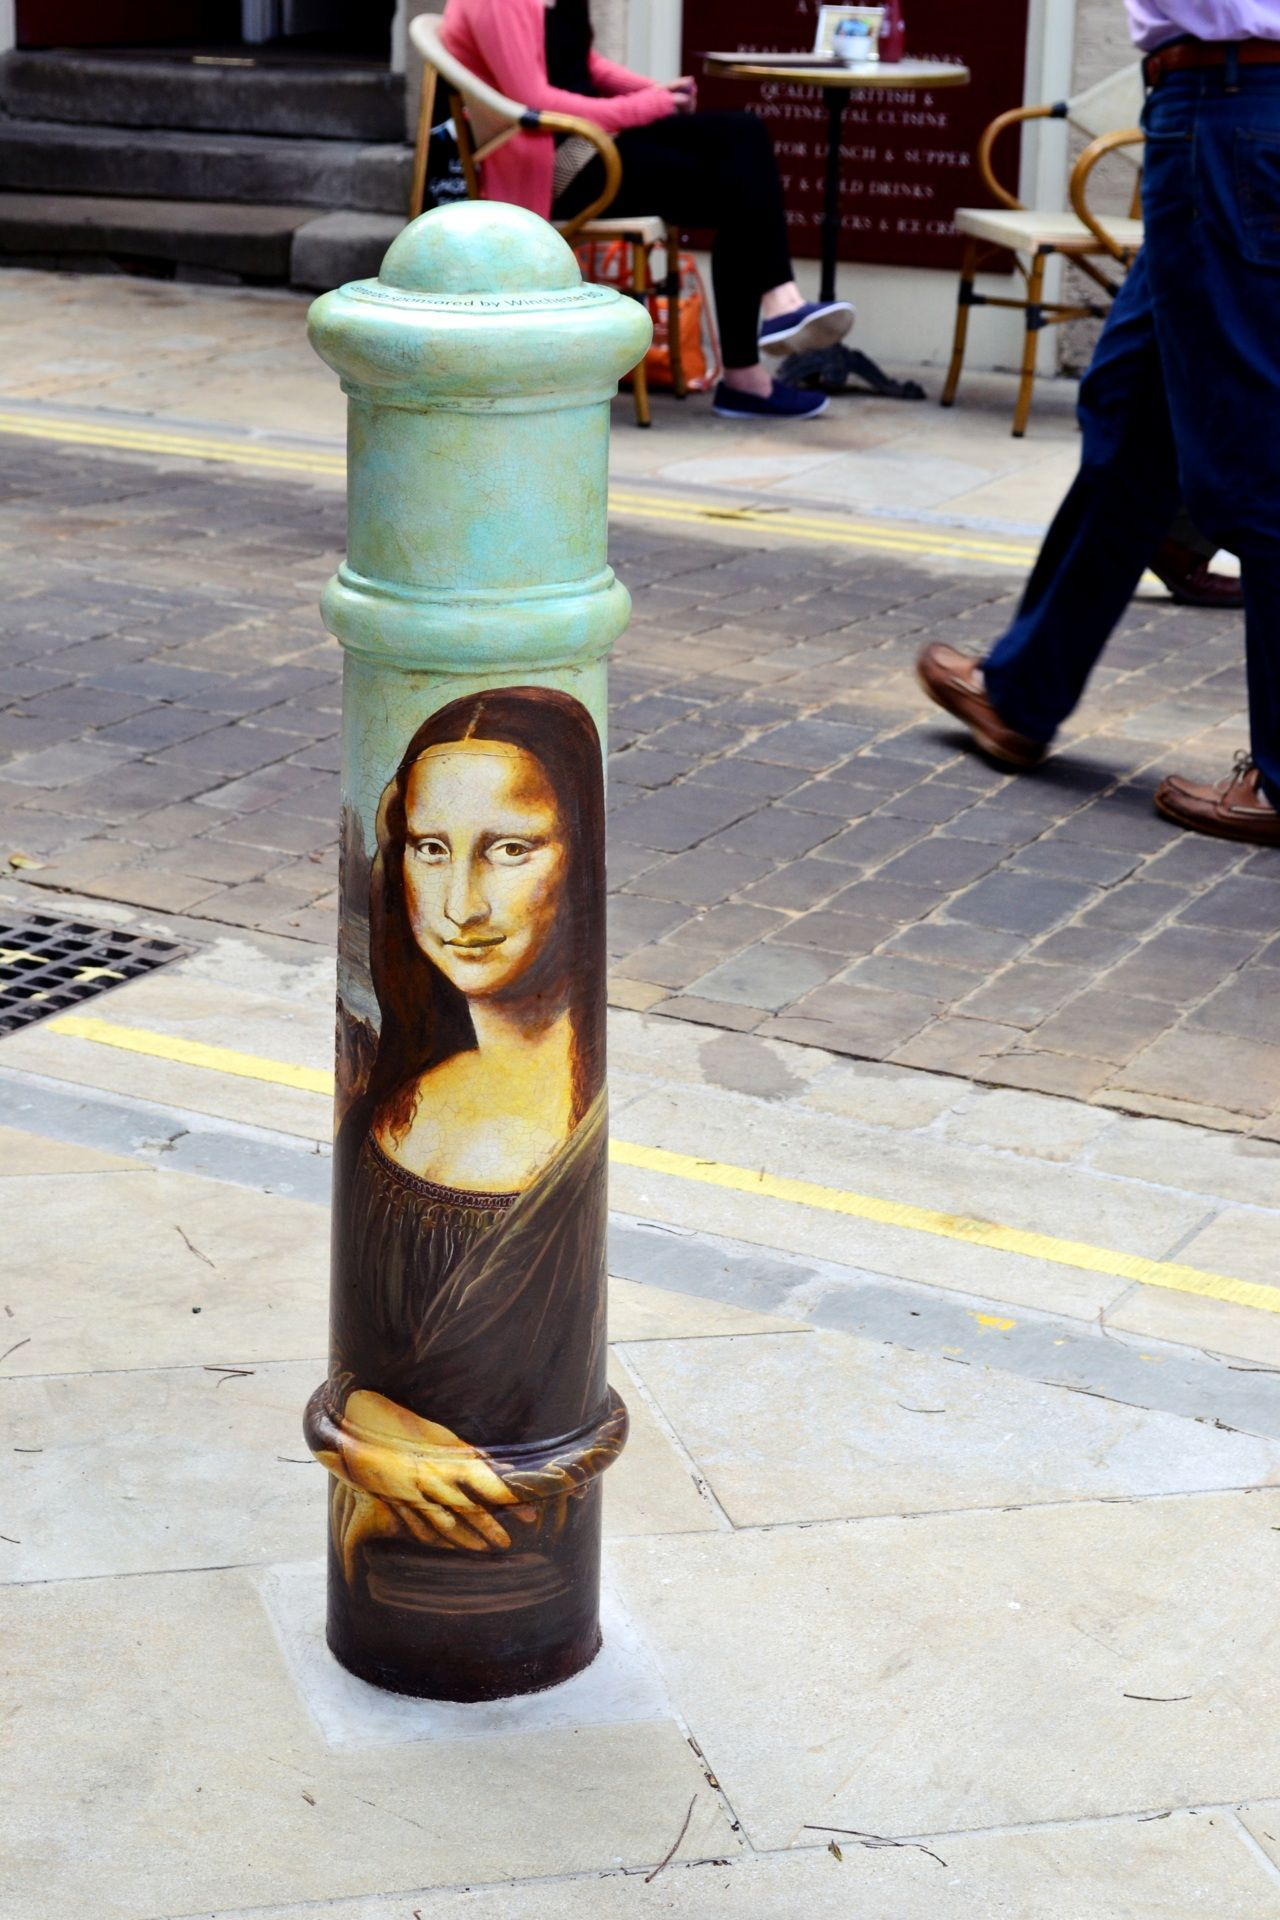 """Artwork by La Joconde - """"I Vividly remember walking into a bollard in Warwick when I was young. Mabey I would have missed it if it looked like this?!!"""""""